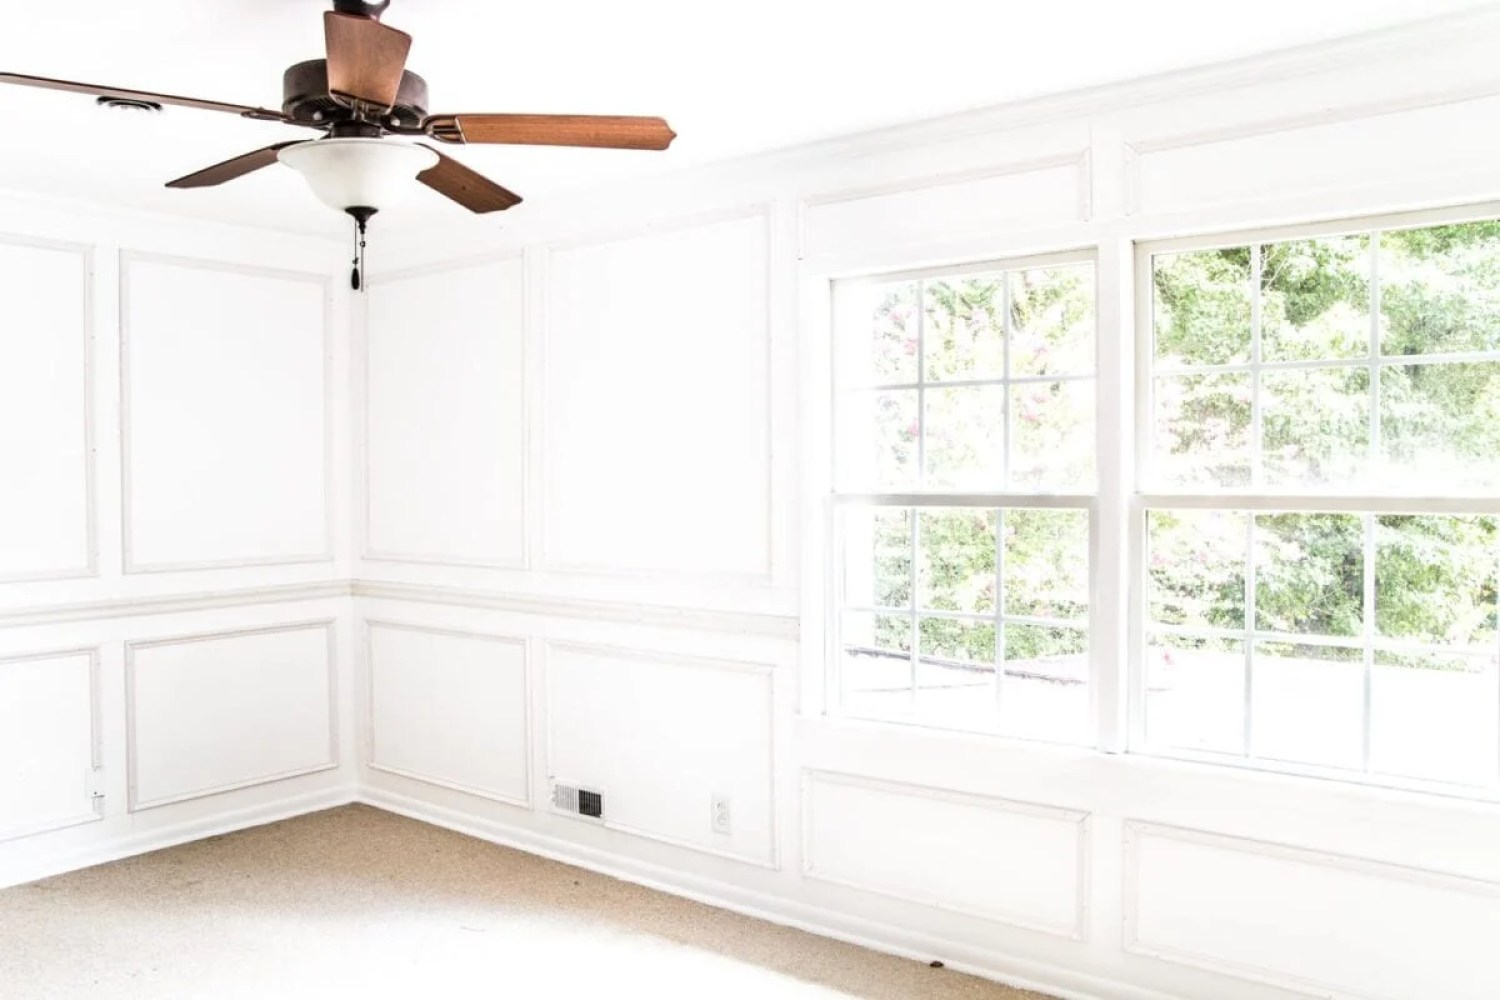 A step-by-step tutorial for hanging picture frame molding wainscoting and a shortcut to make it easier.